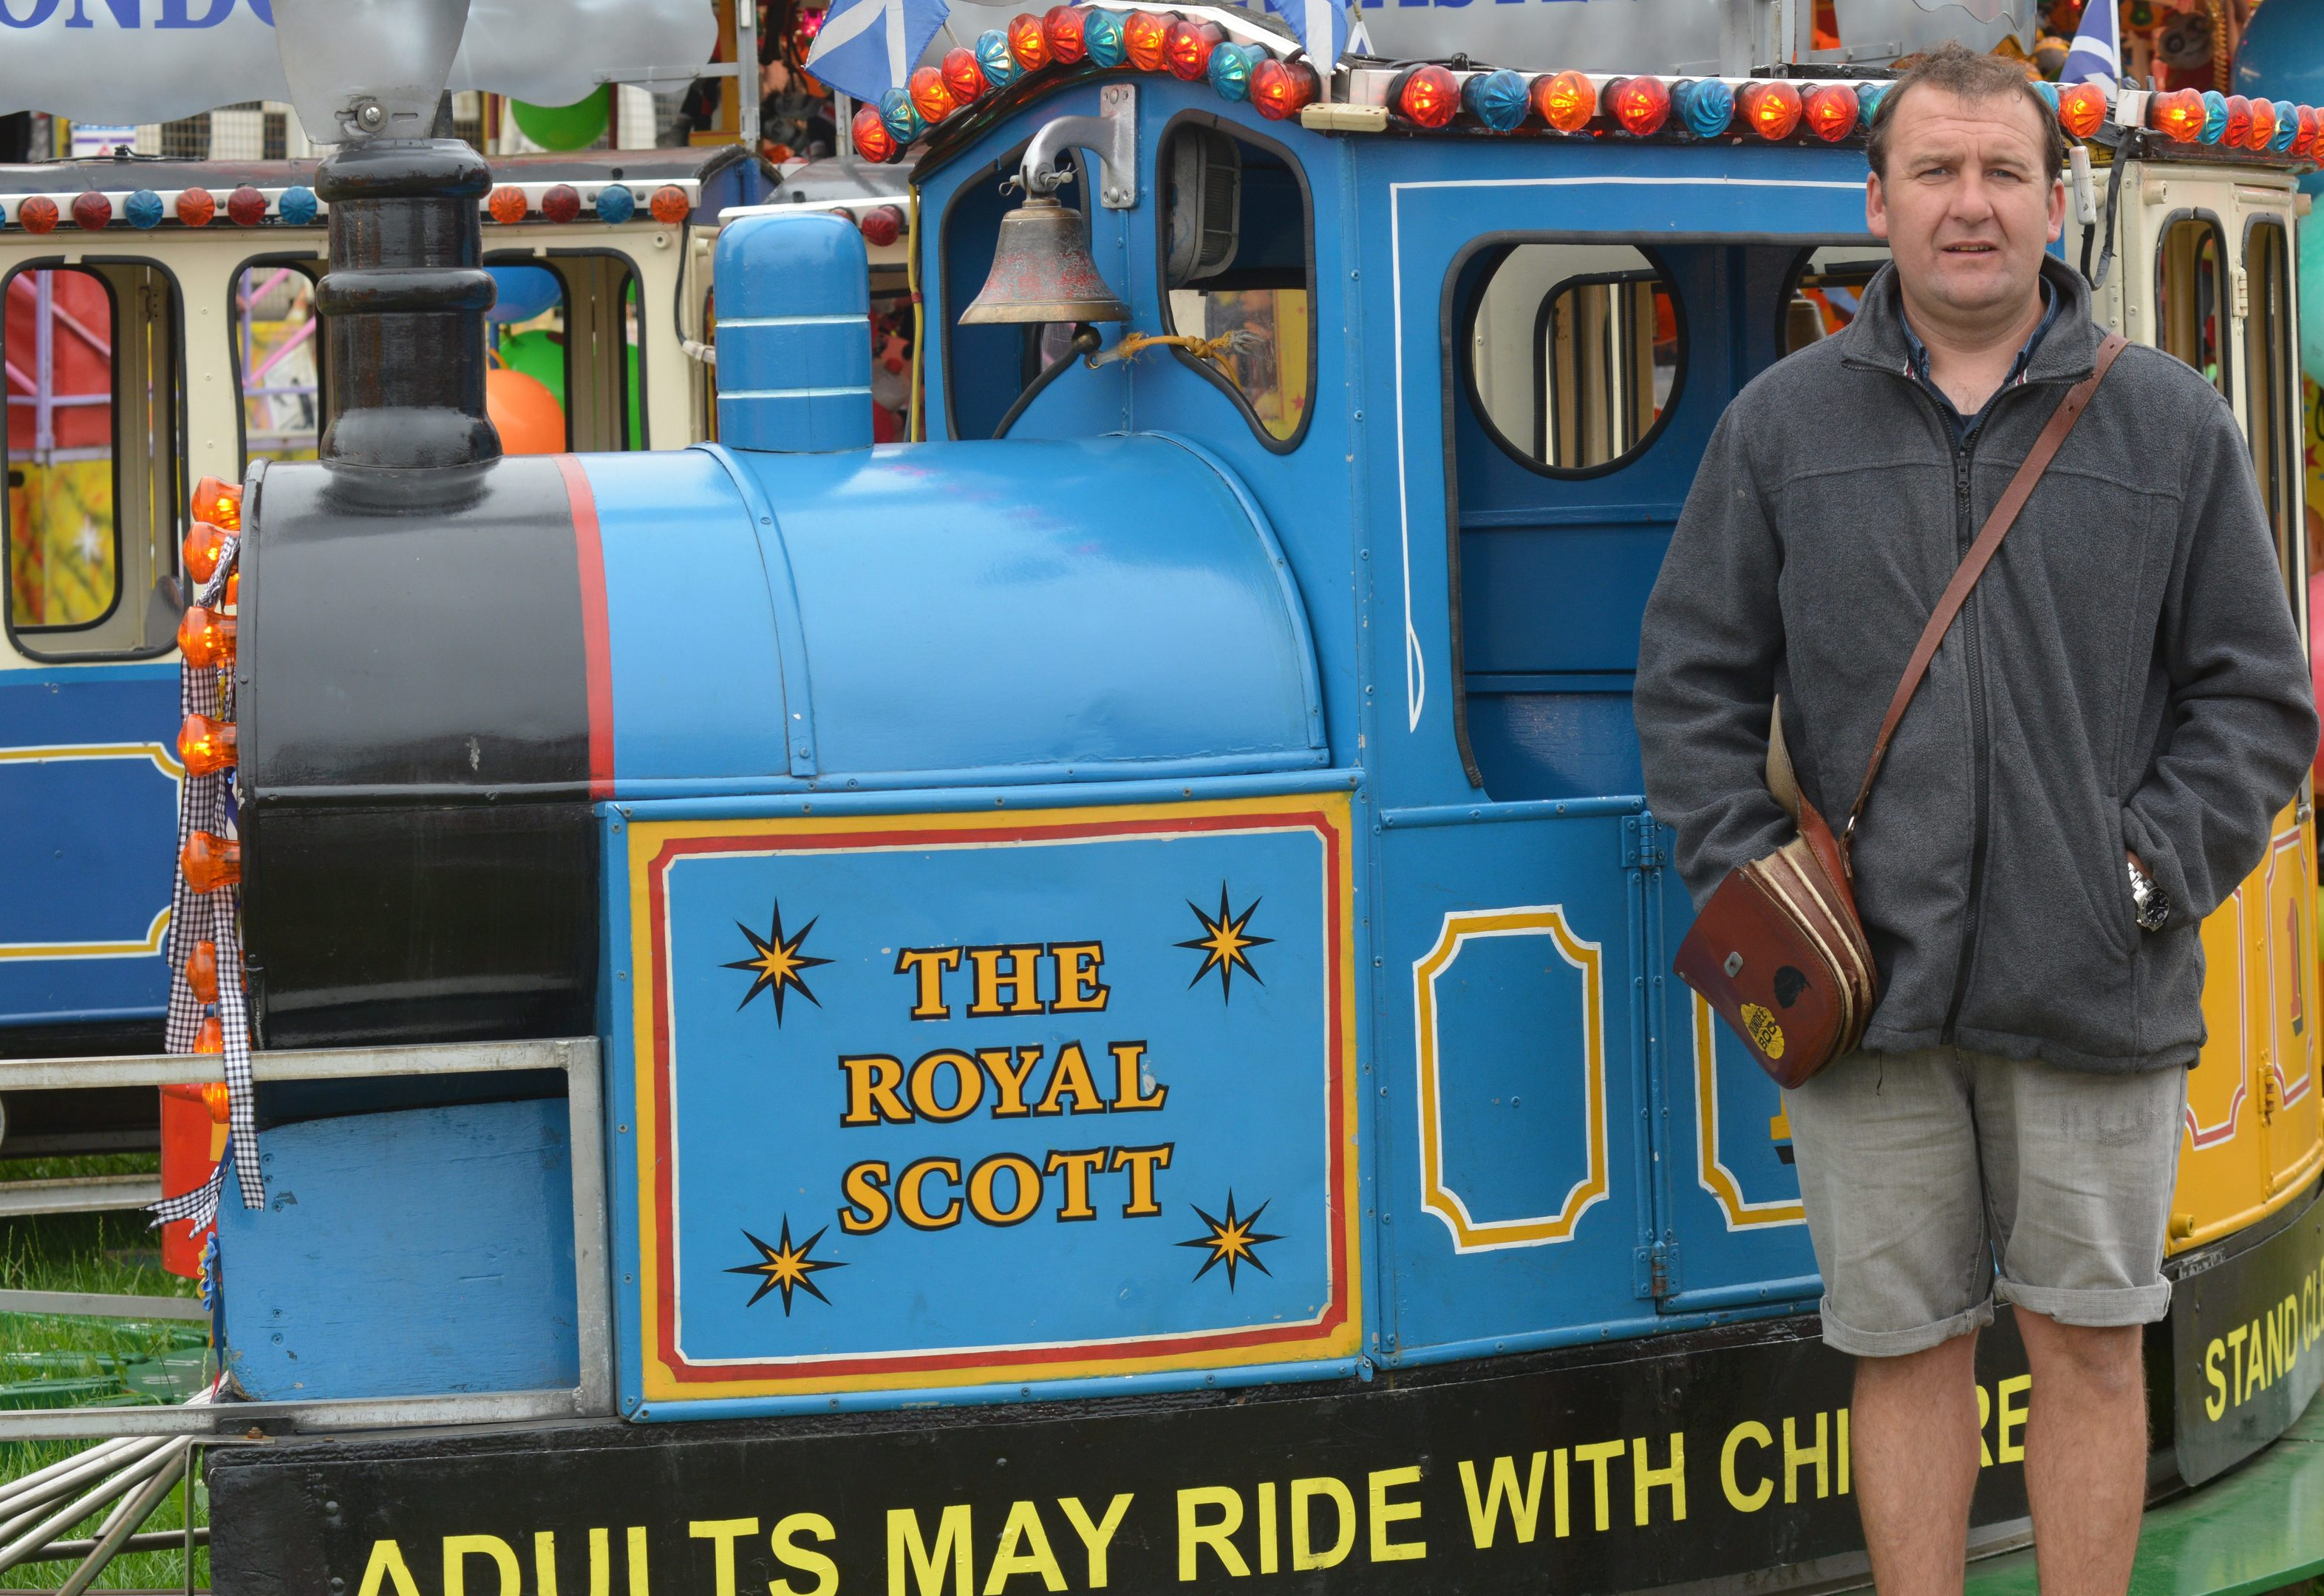 Scott Nutter with his Royal Scott train in Burntisland